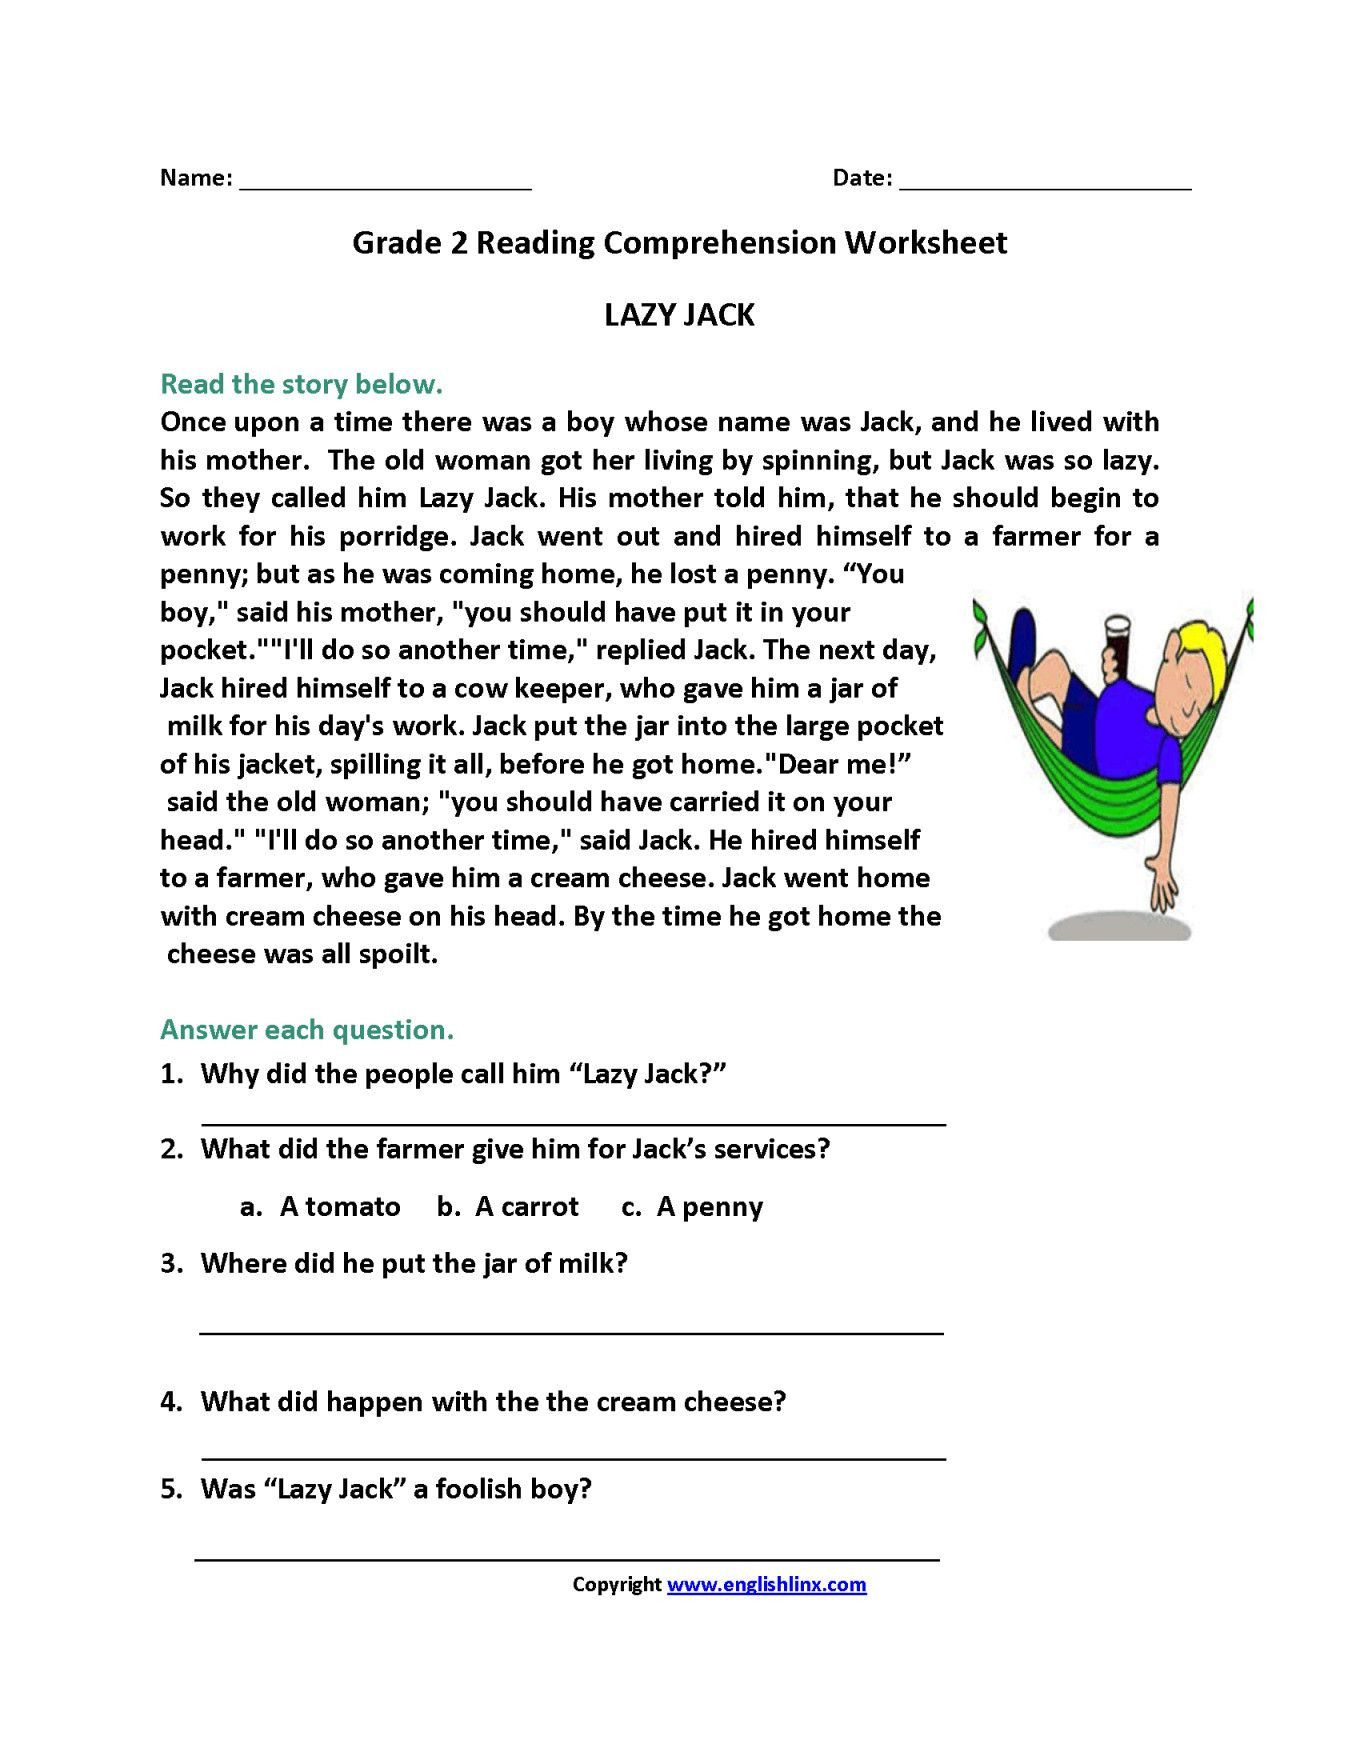 Free 2nd Grade Comprehension Worksheets 4 Free Math Worksheets Second Gr Reading Comprehension Worksheets 2nd Grade Reading Worksheets Comprehension Worksheets